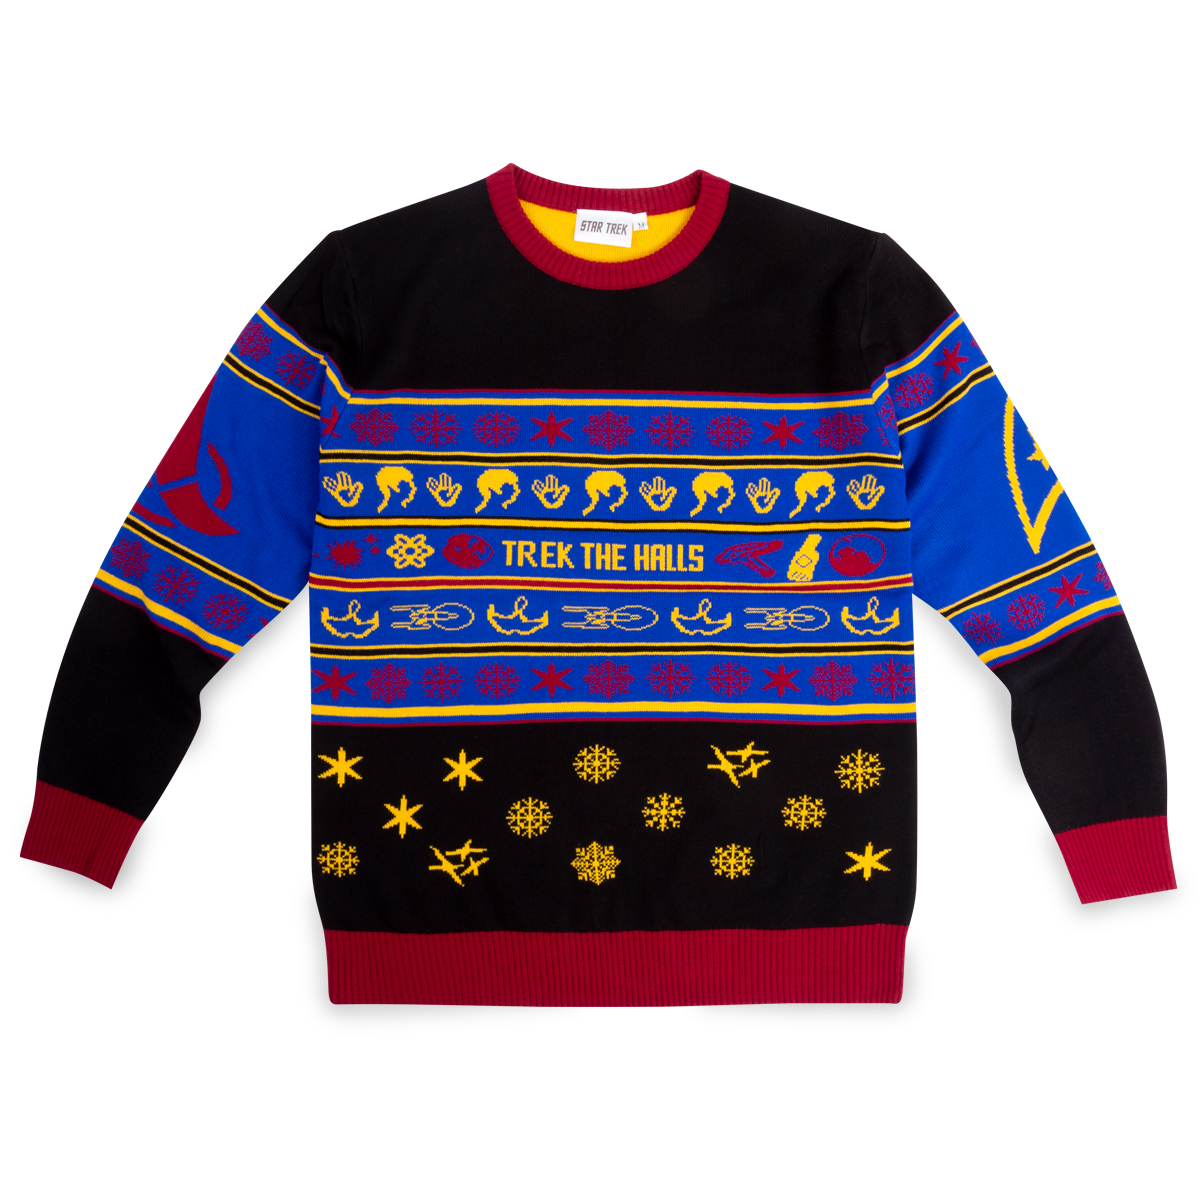 Star Trek Trek The Halls Holiday Sweater